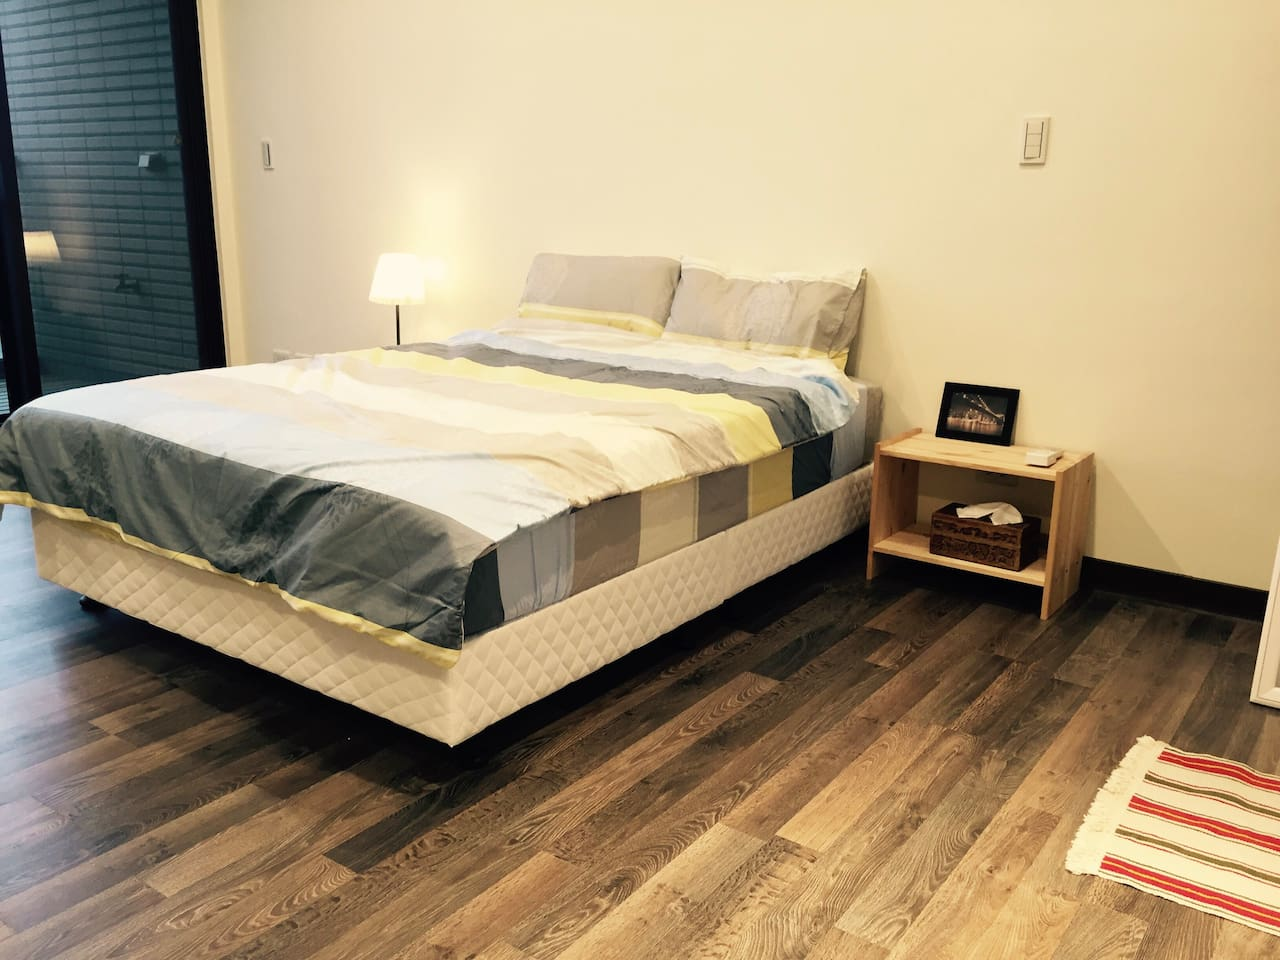 Relaxing house linkou a9 airport mrt mitsui outlet condos zur